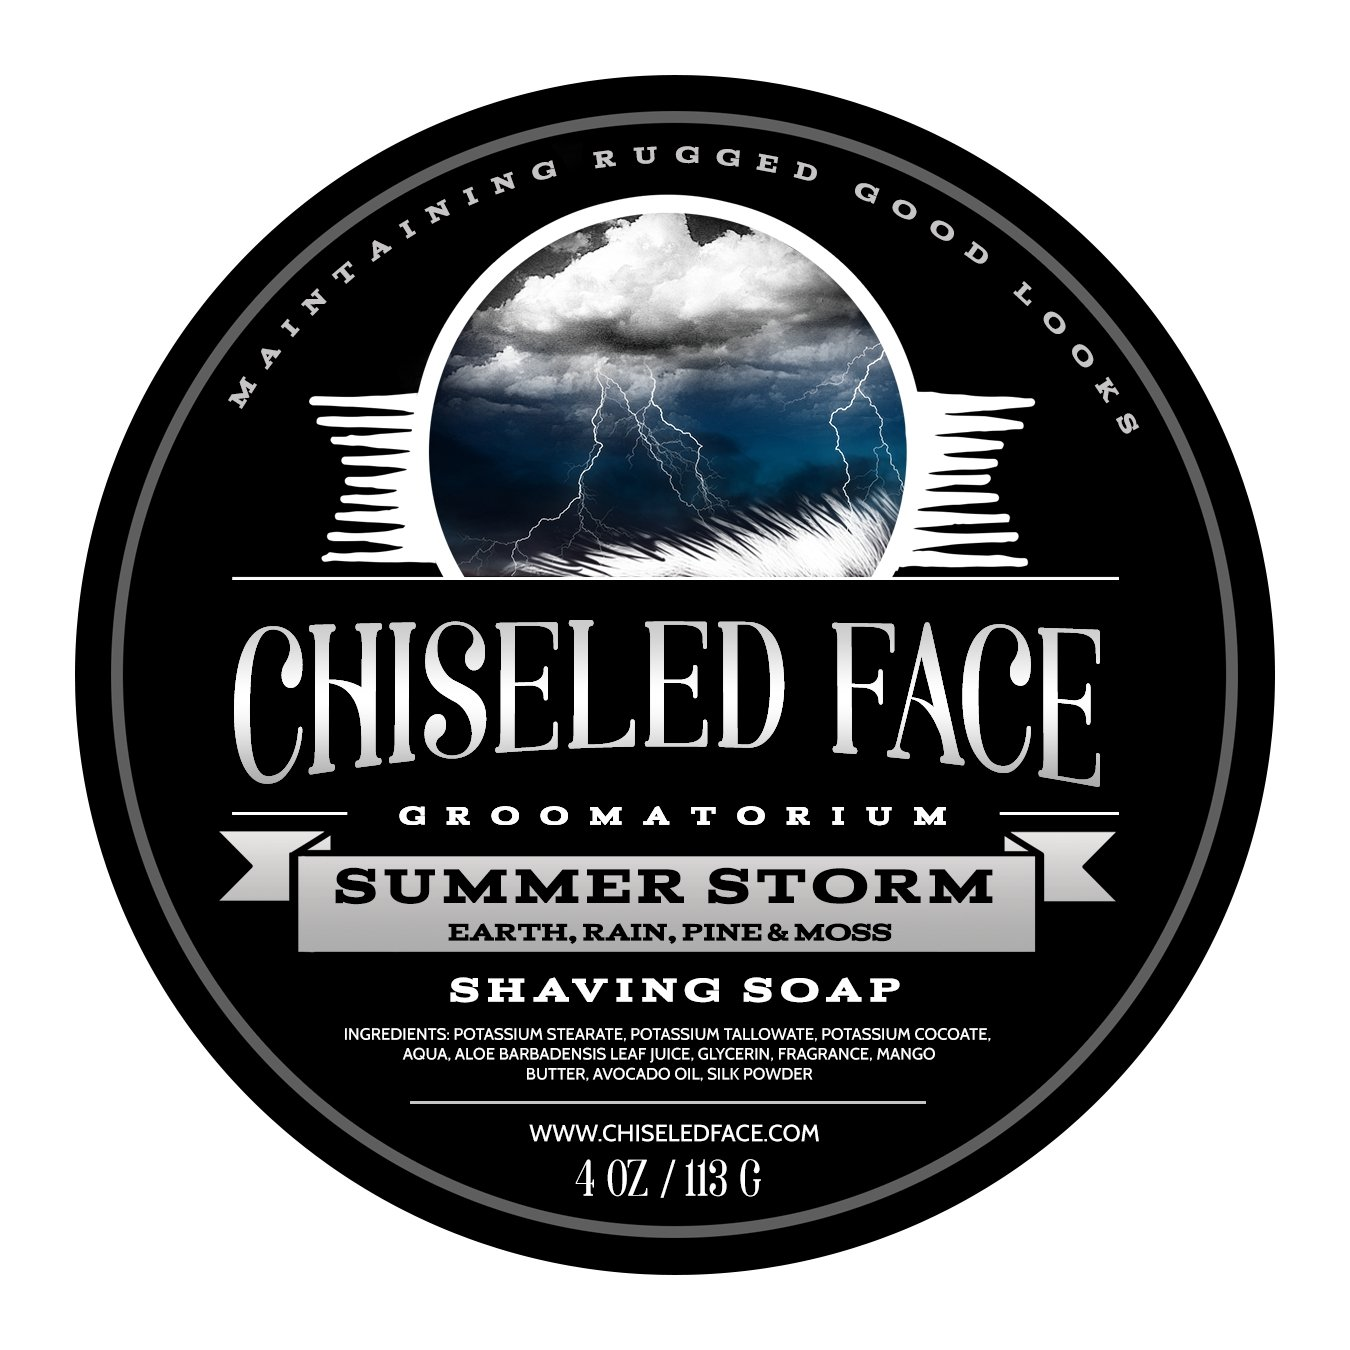 Summer Storm by Chiseled Face — Handmade Luxury Shaving Soap — Rich, Thick Lather — Smooth, Comfortable Shaves — Tallow-Based Soap — Made in the USA